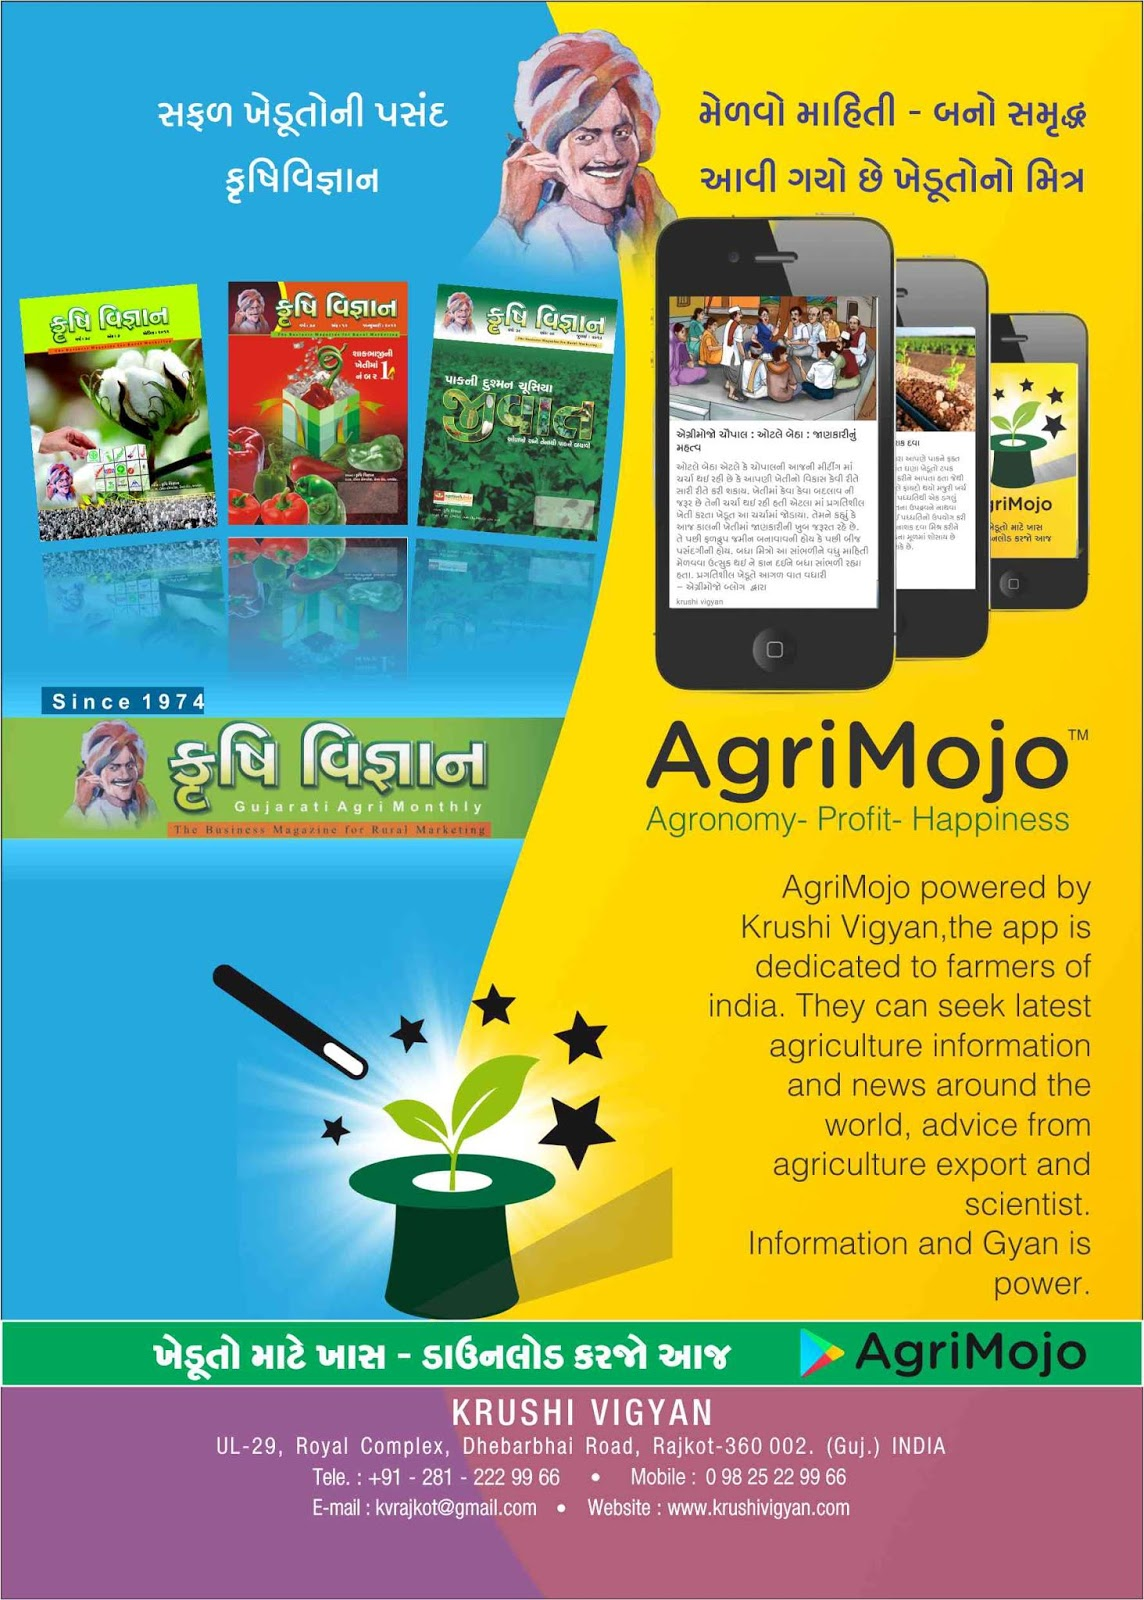 Download agrimojo to your android mobile